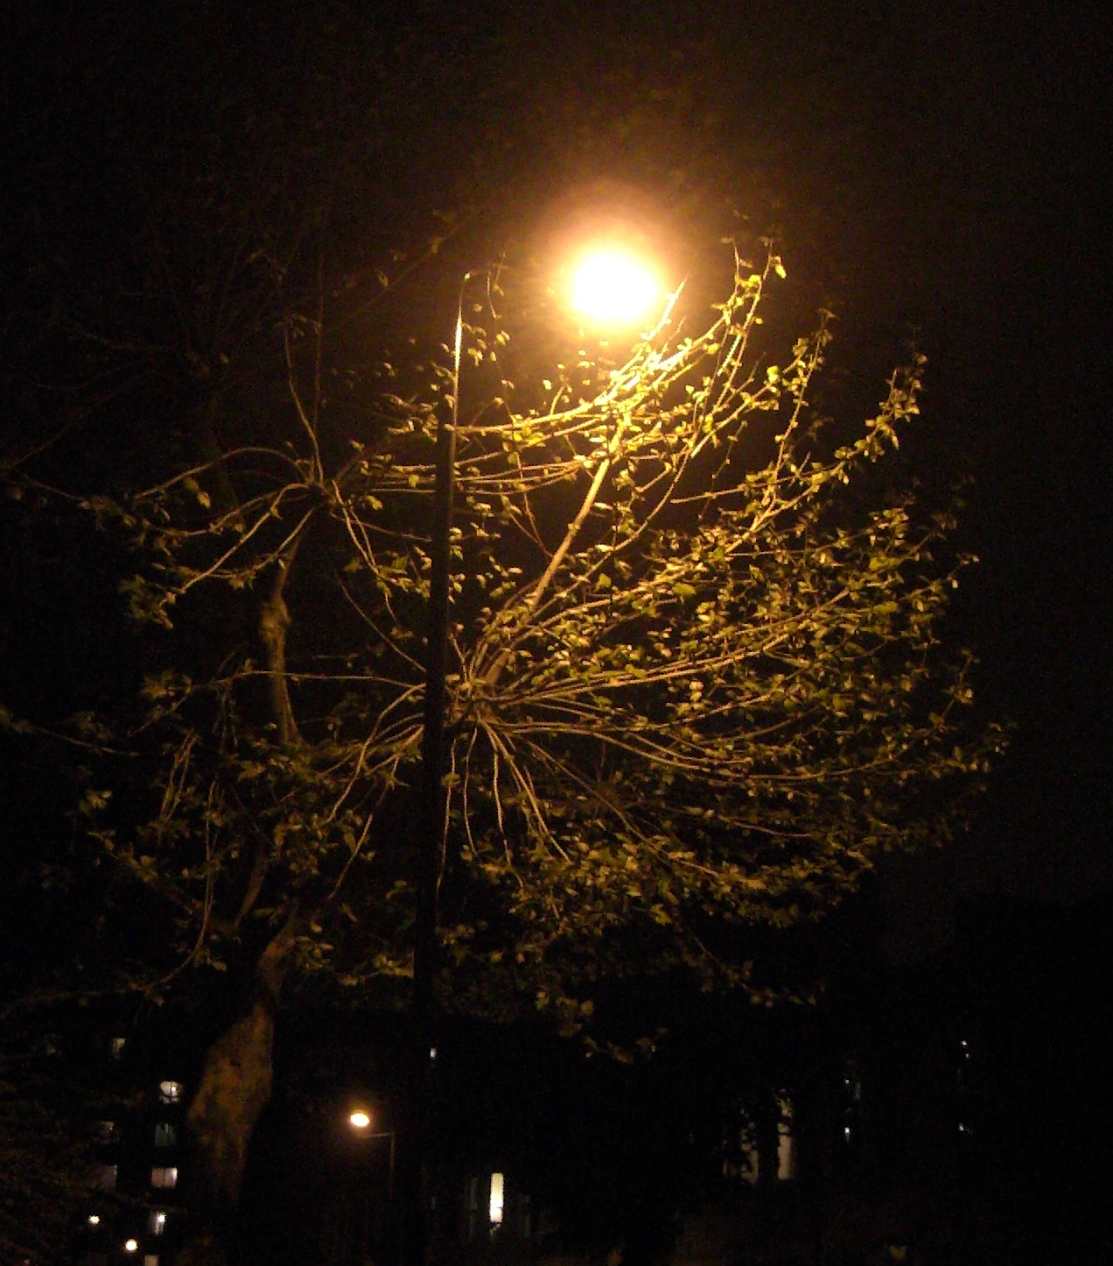 Picture street light and tree